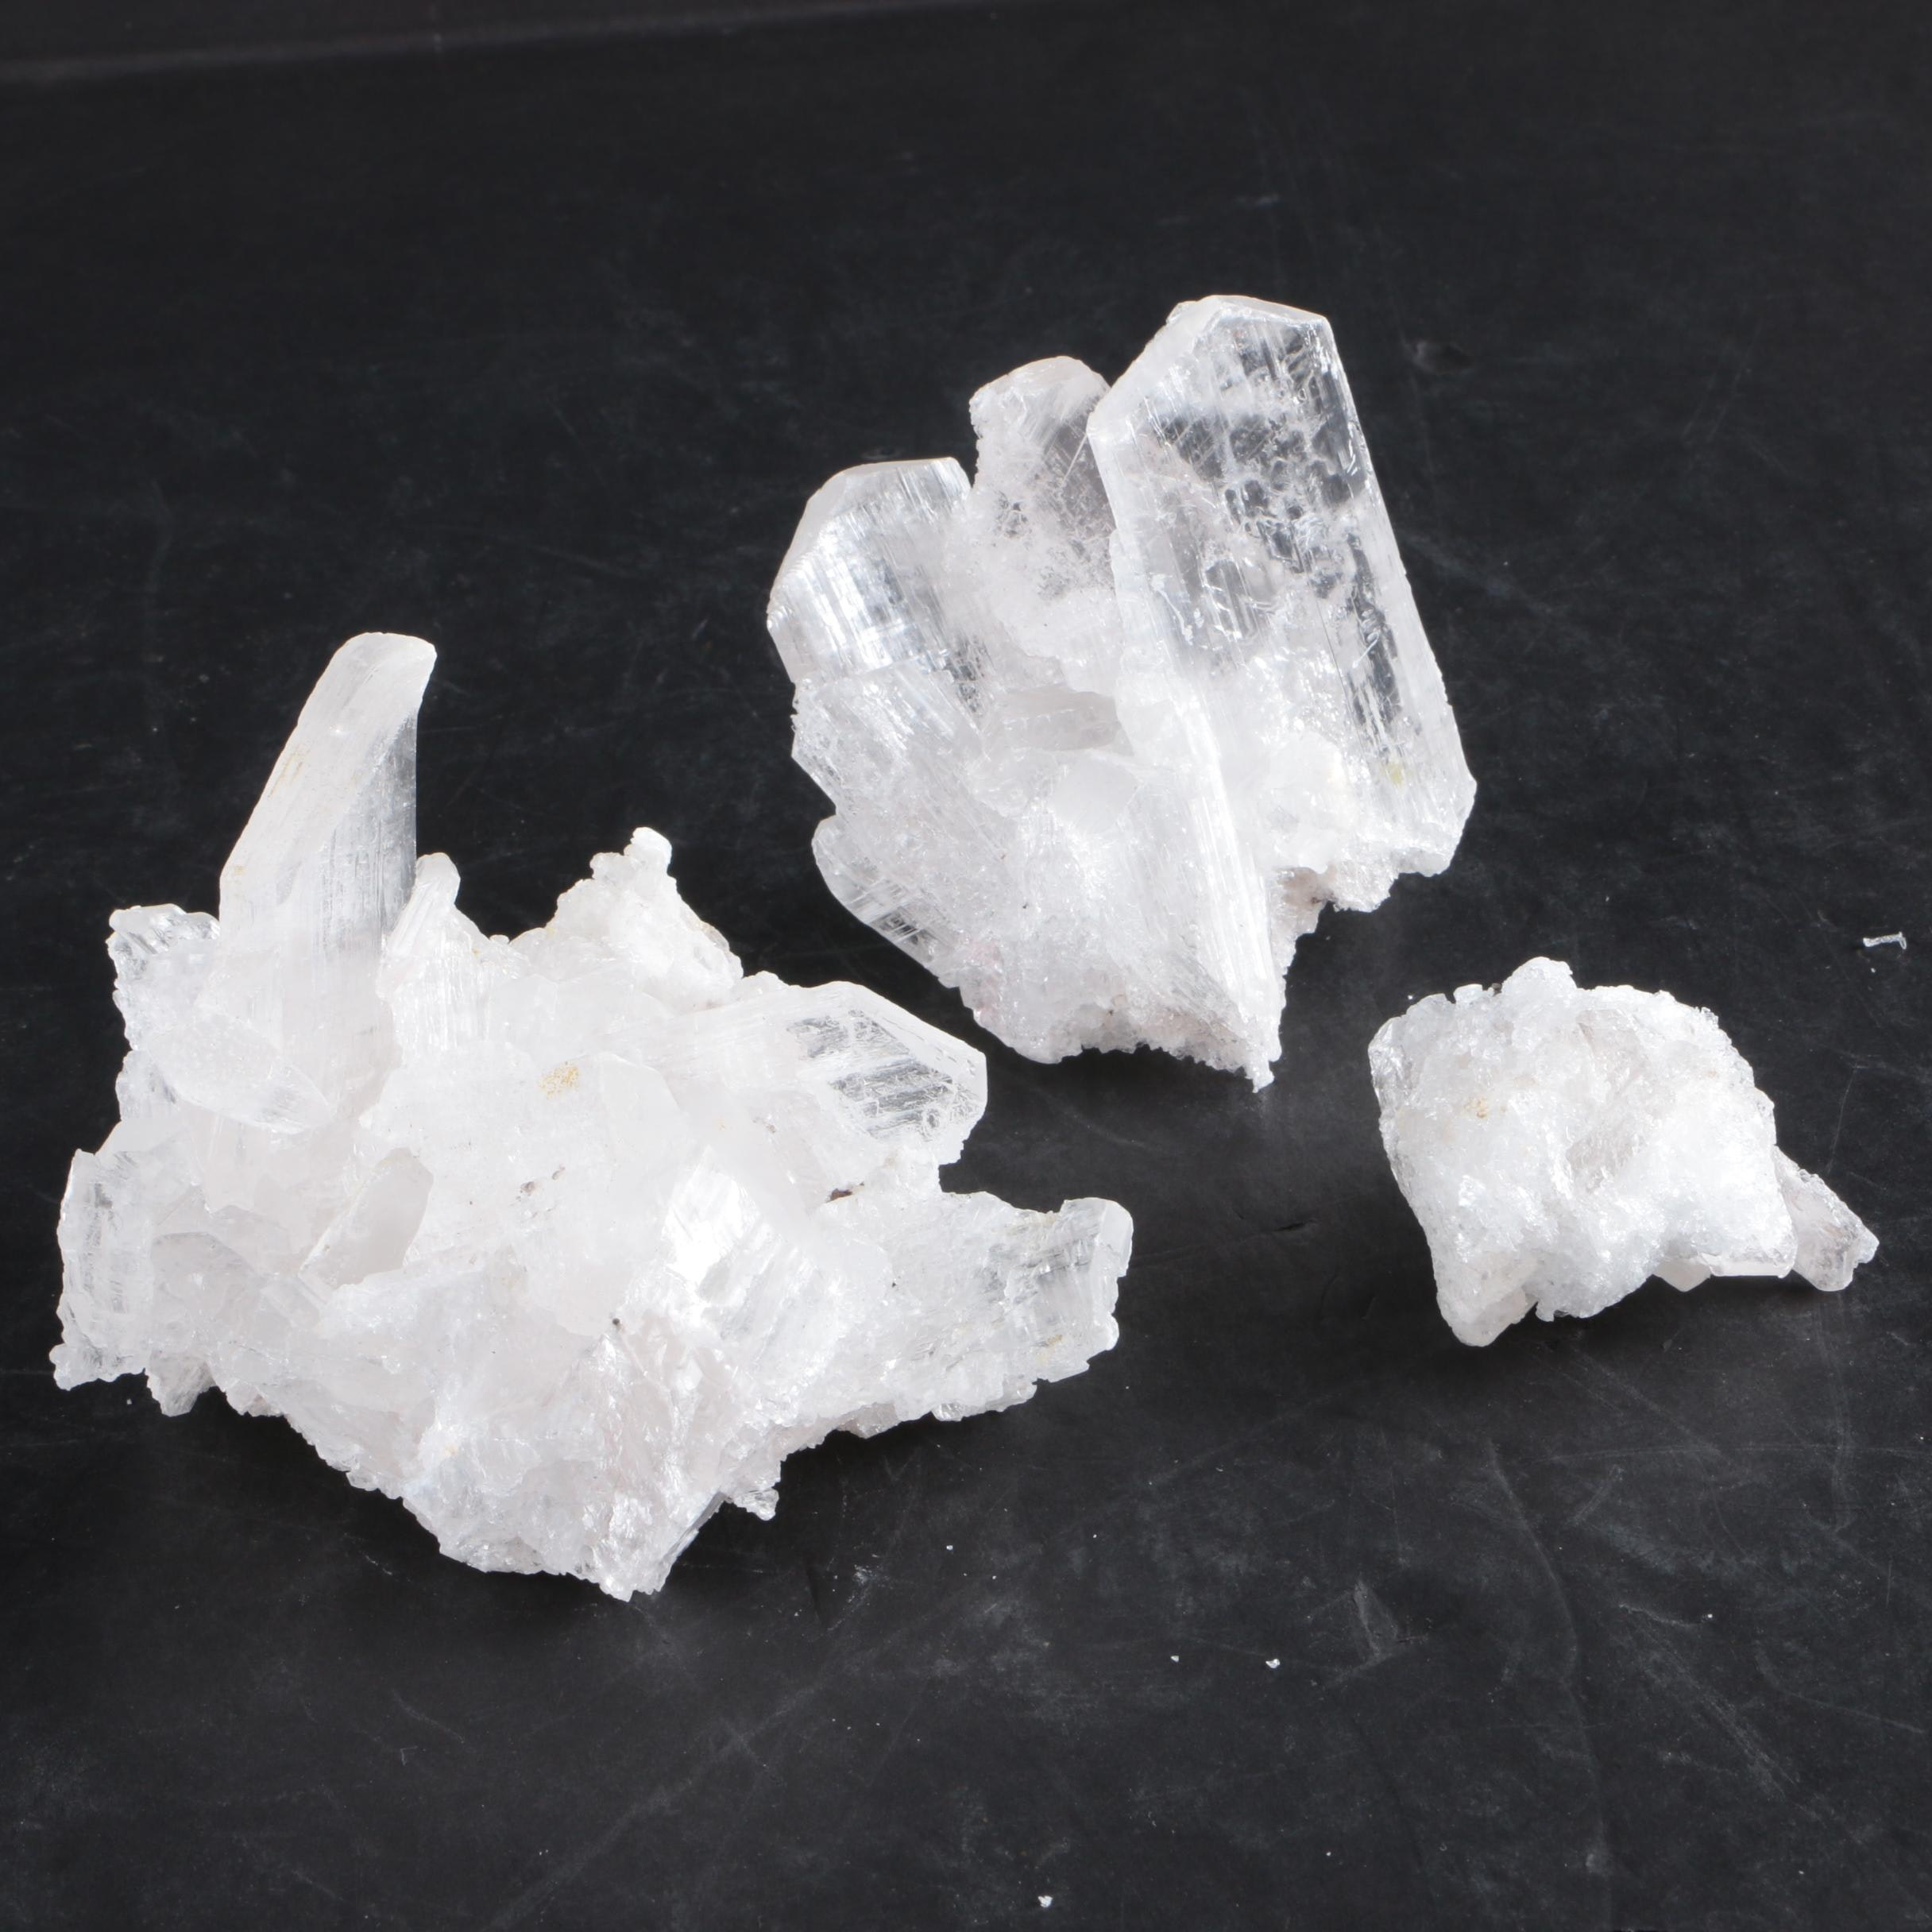 Selenite Crystal Specimens